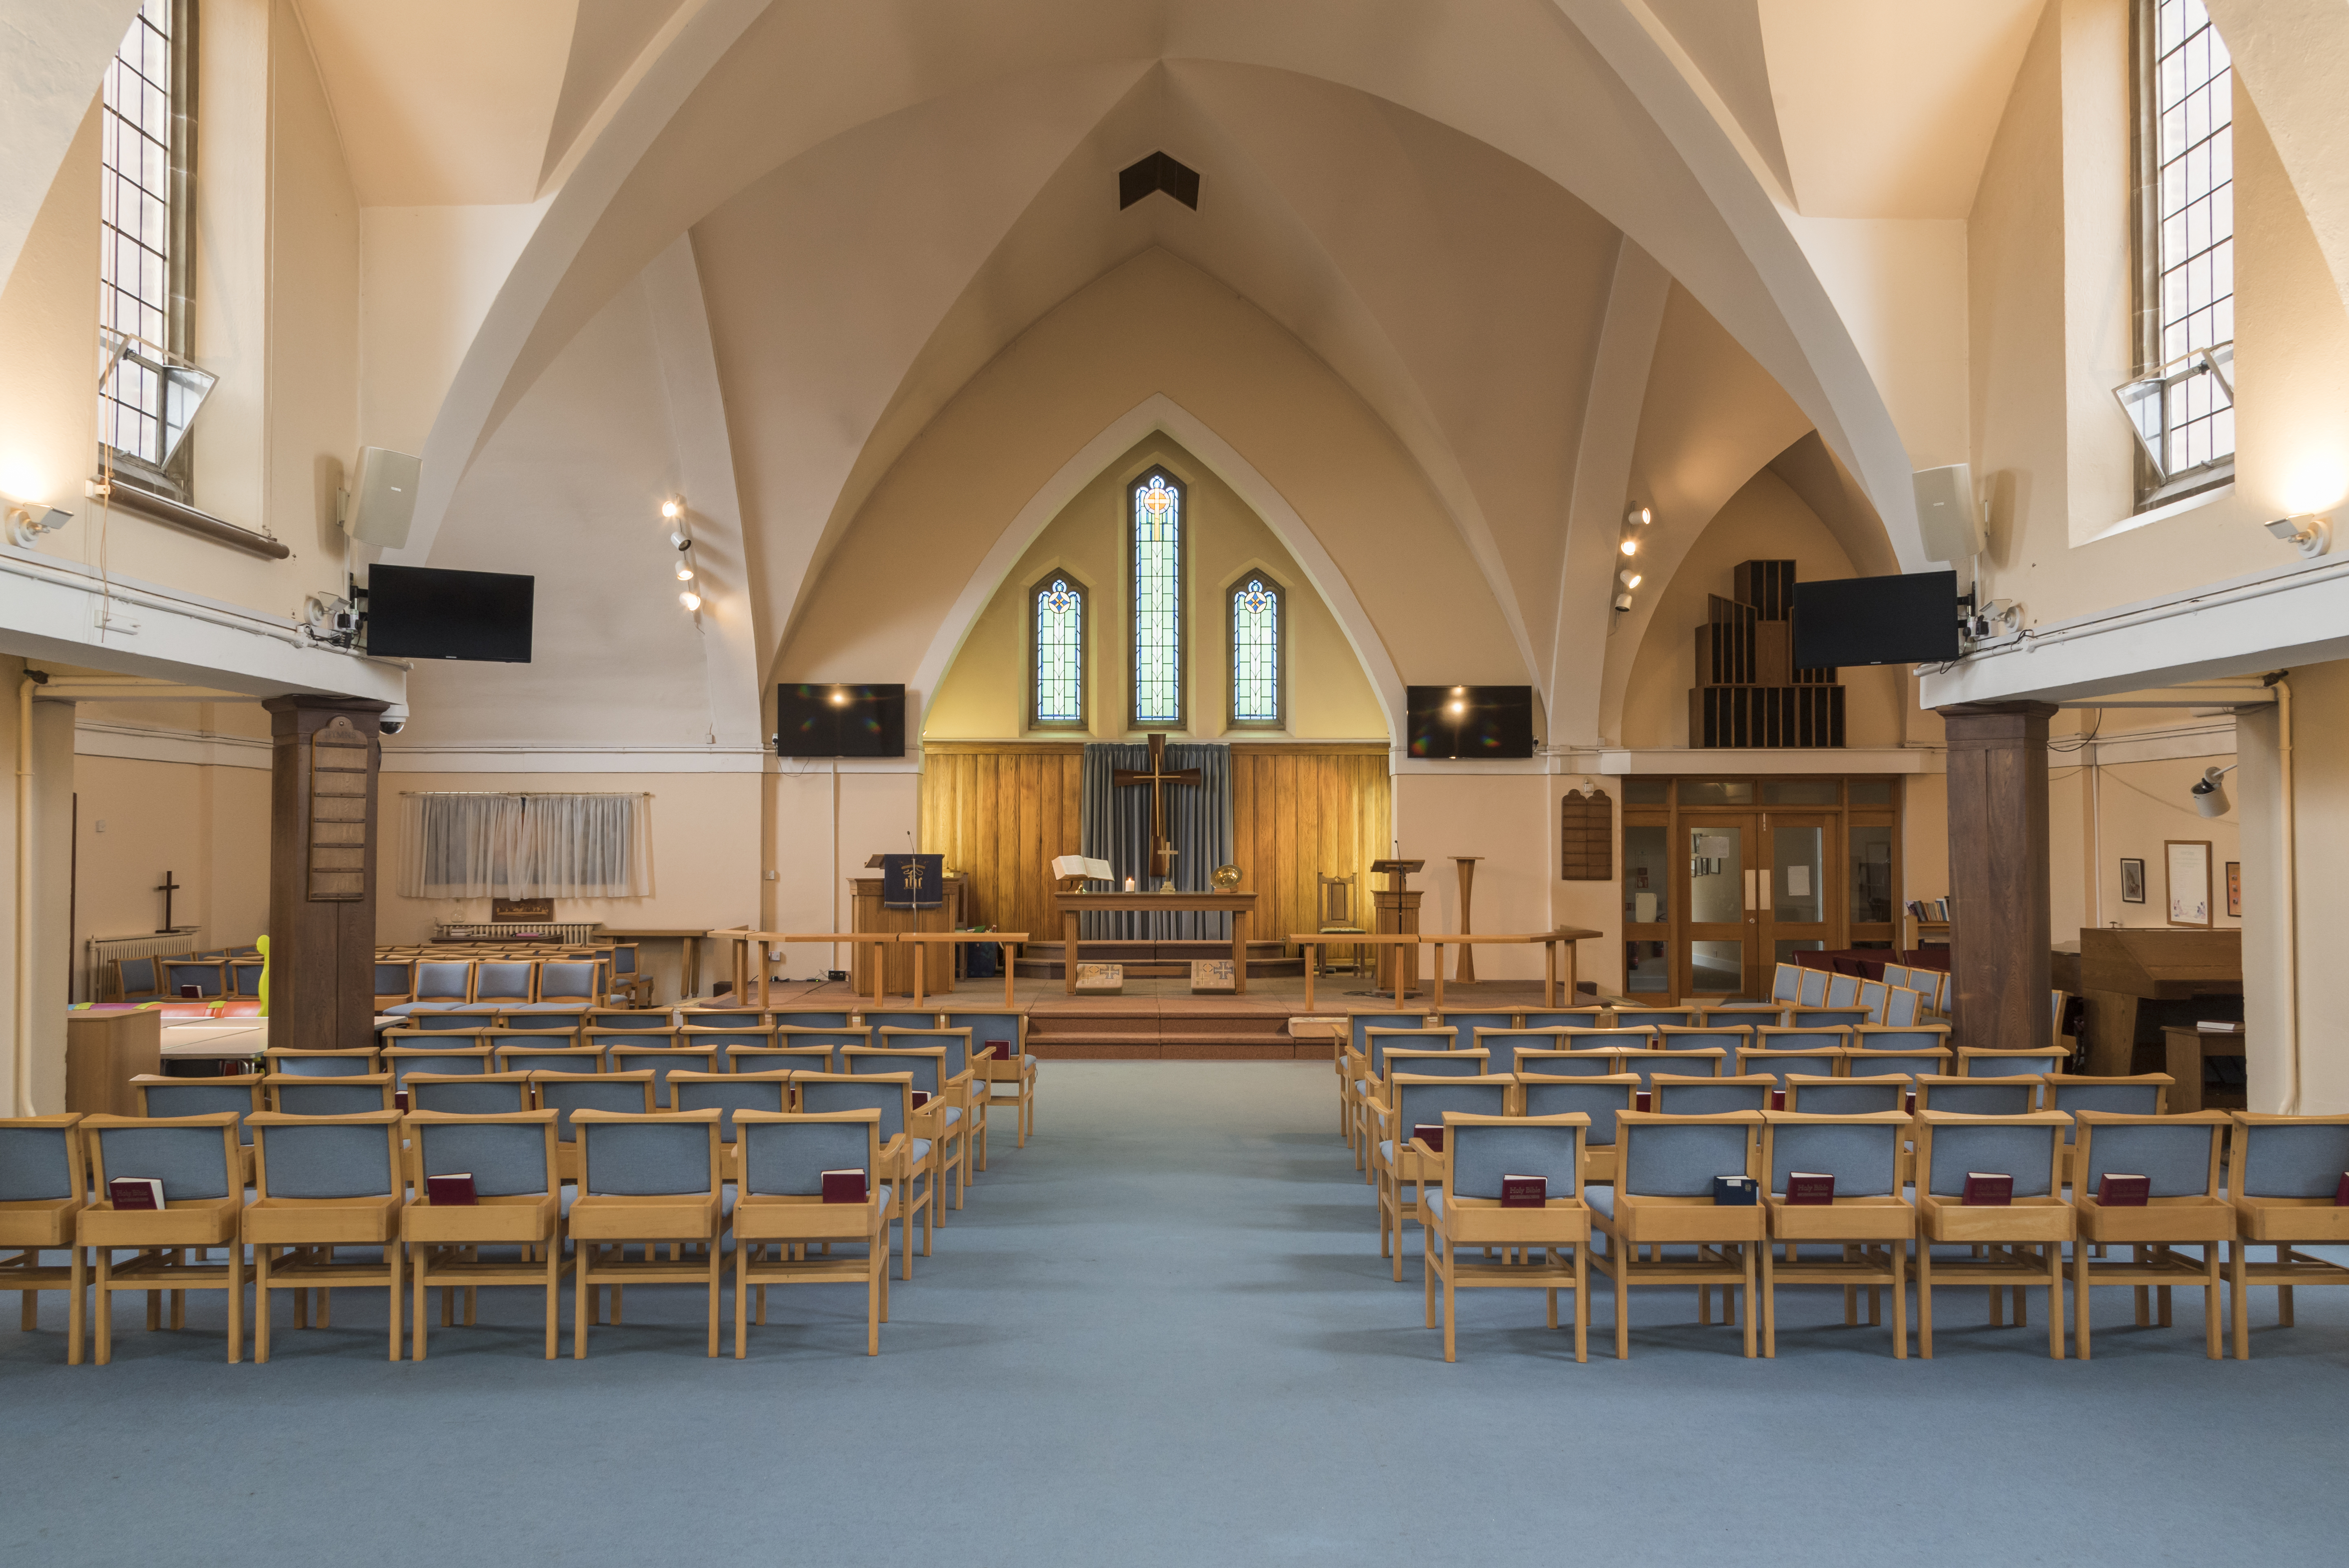 A more complete view of the sanctuary